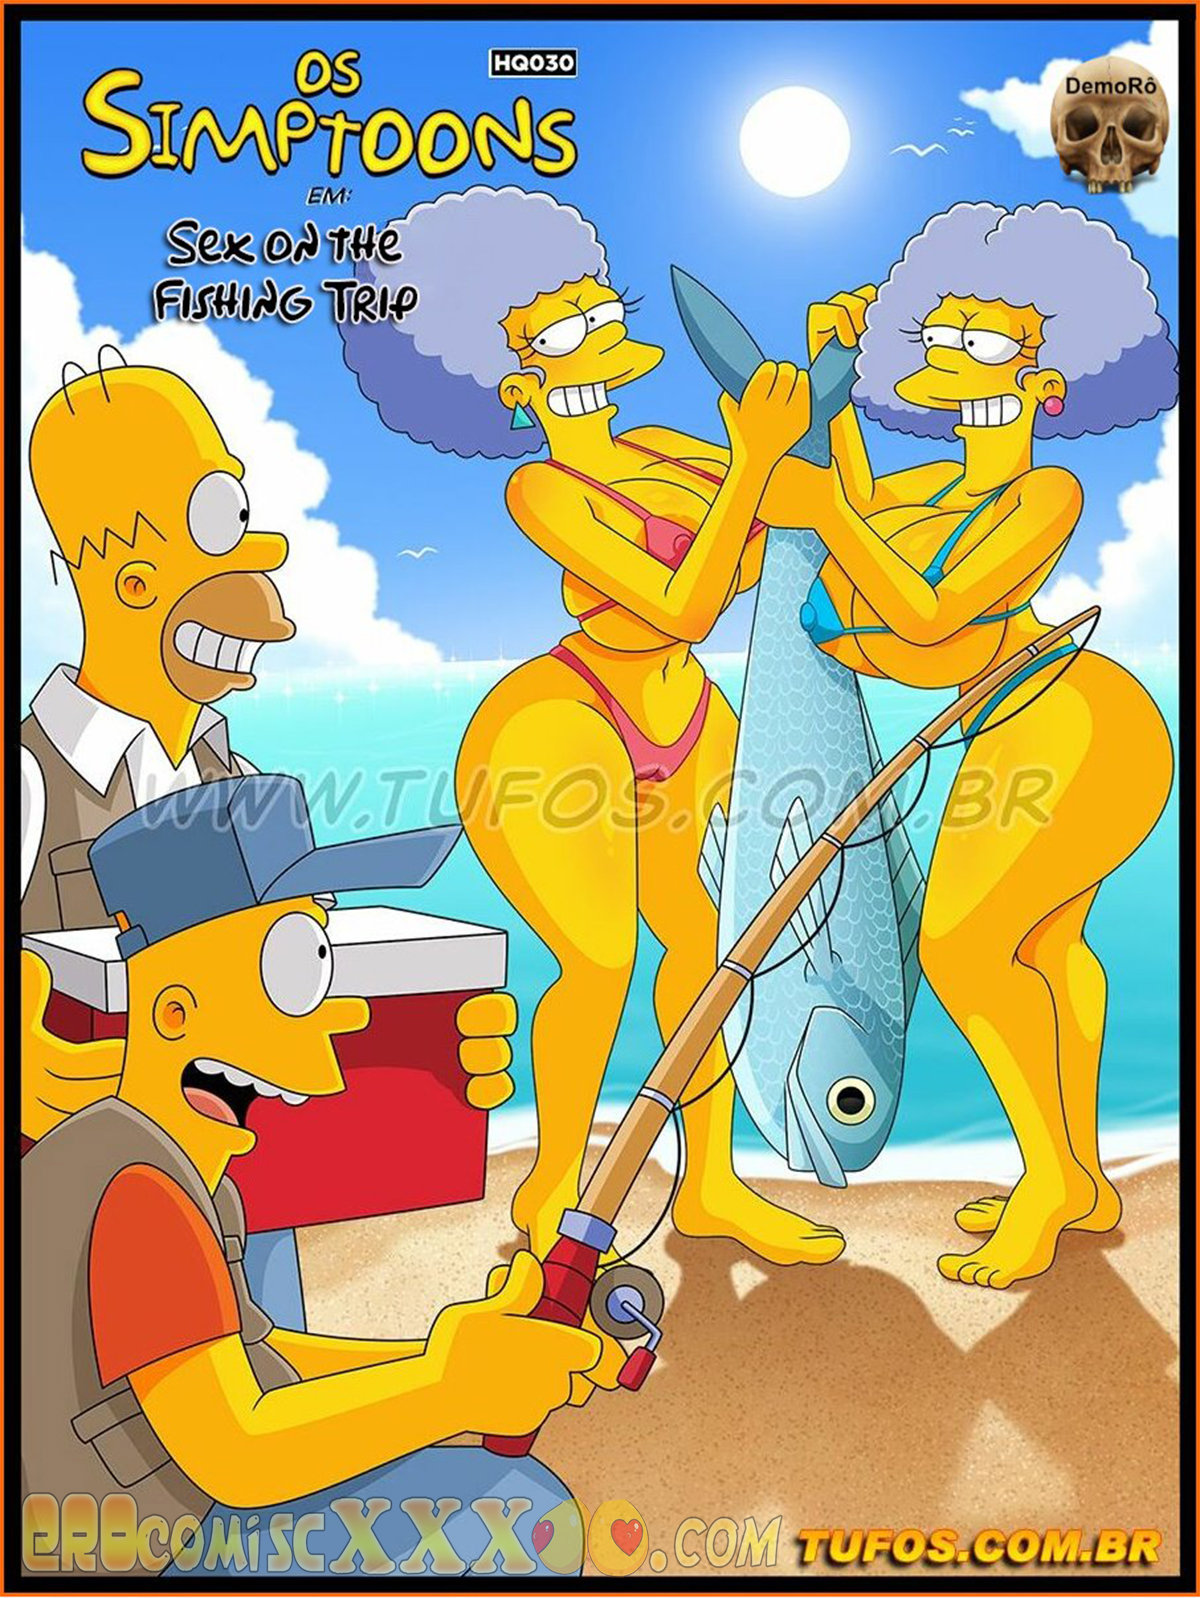 The Simpsons 30 Sex on the Fishing Trip 1 - The Simpsons 30- Sex On The Fishing Trip.